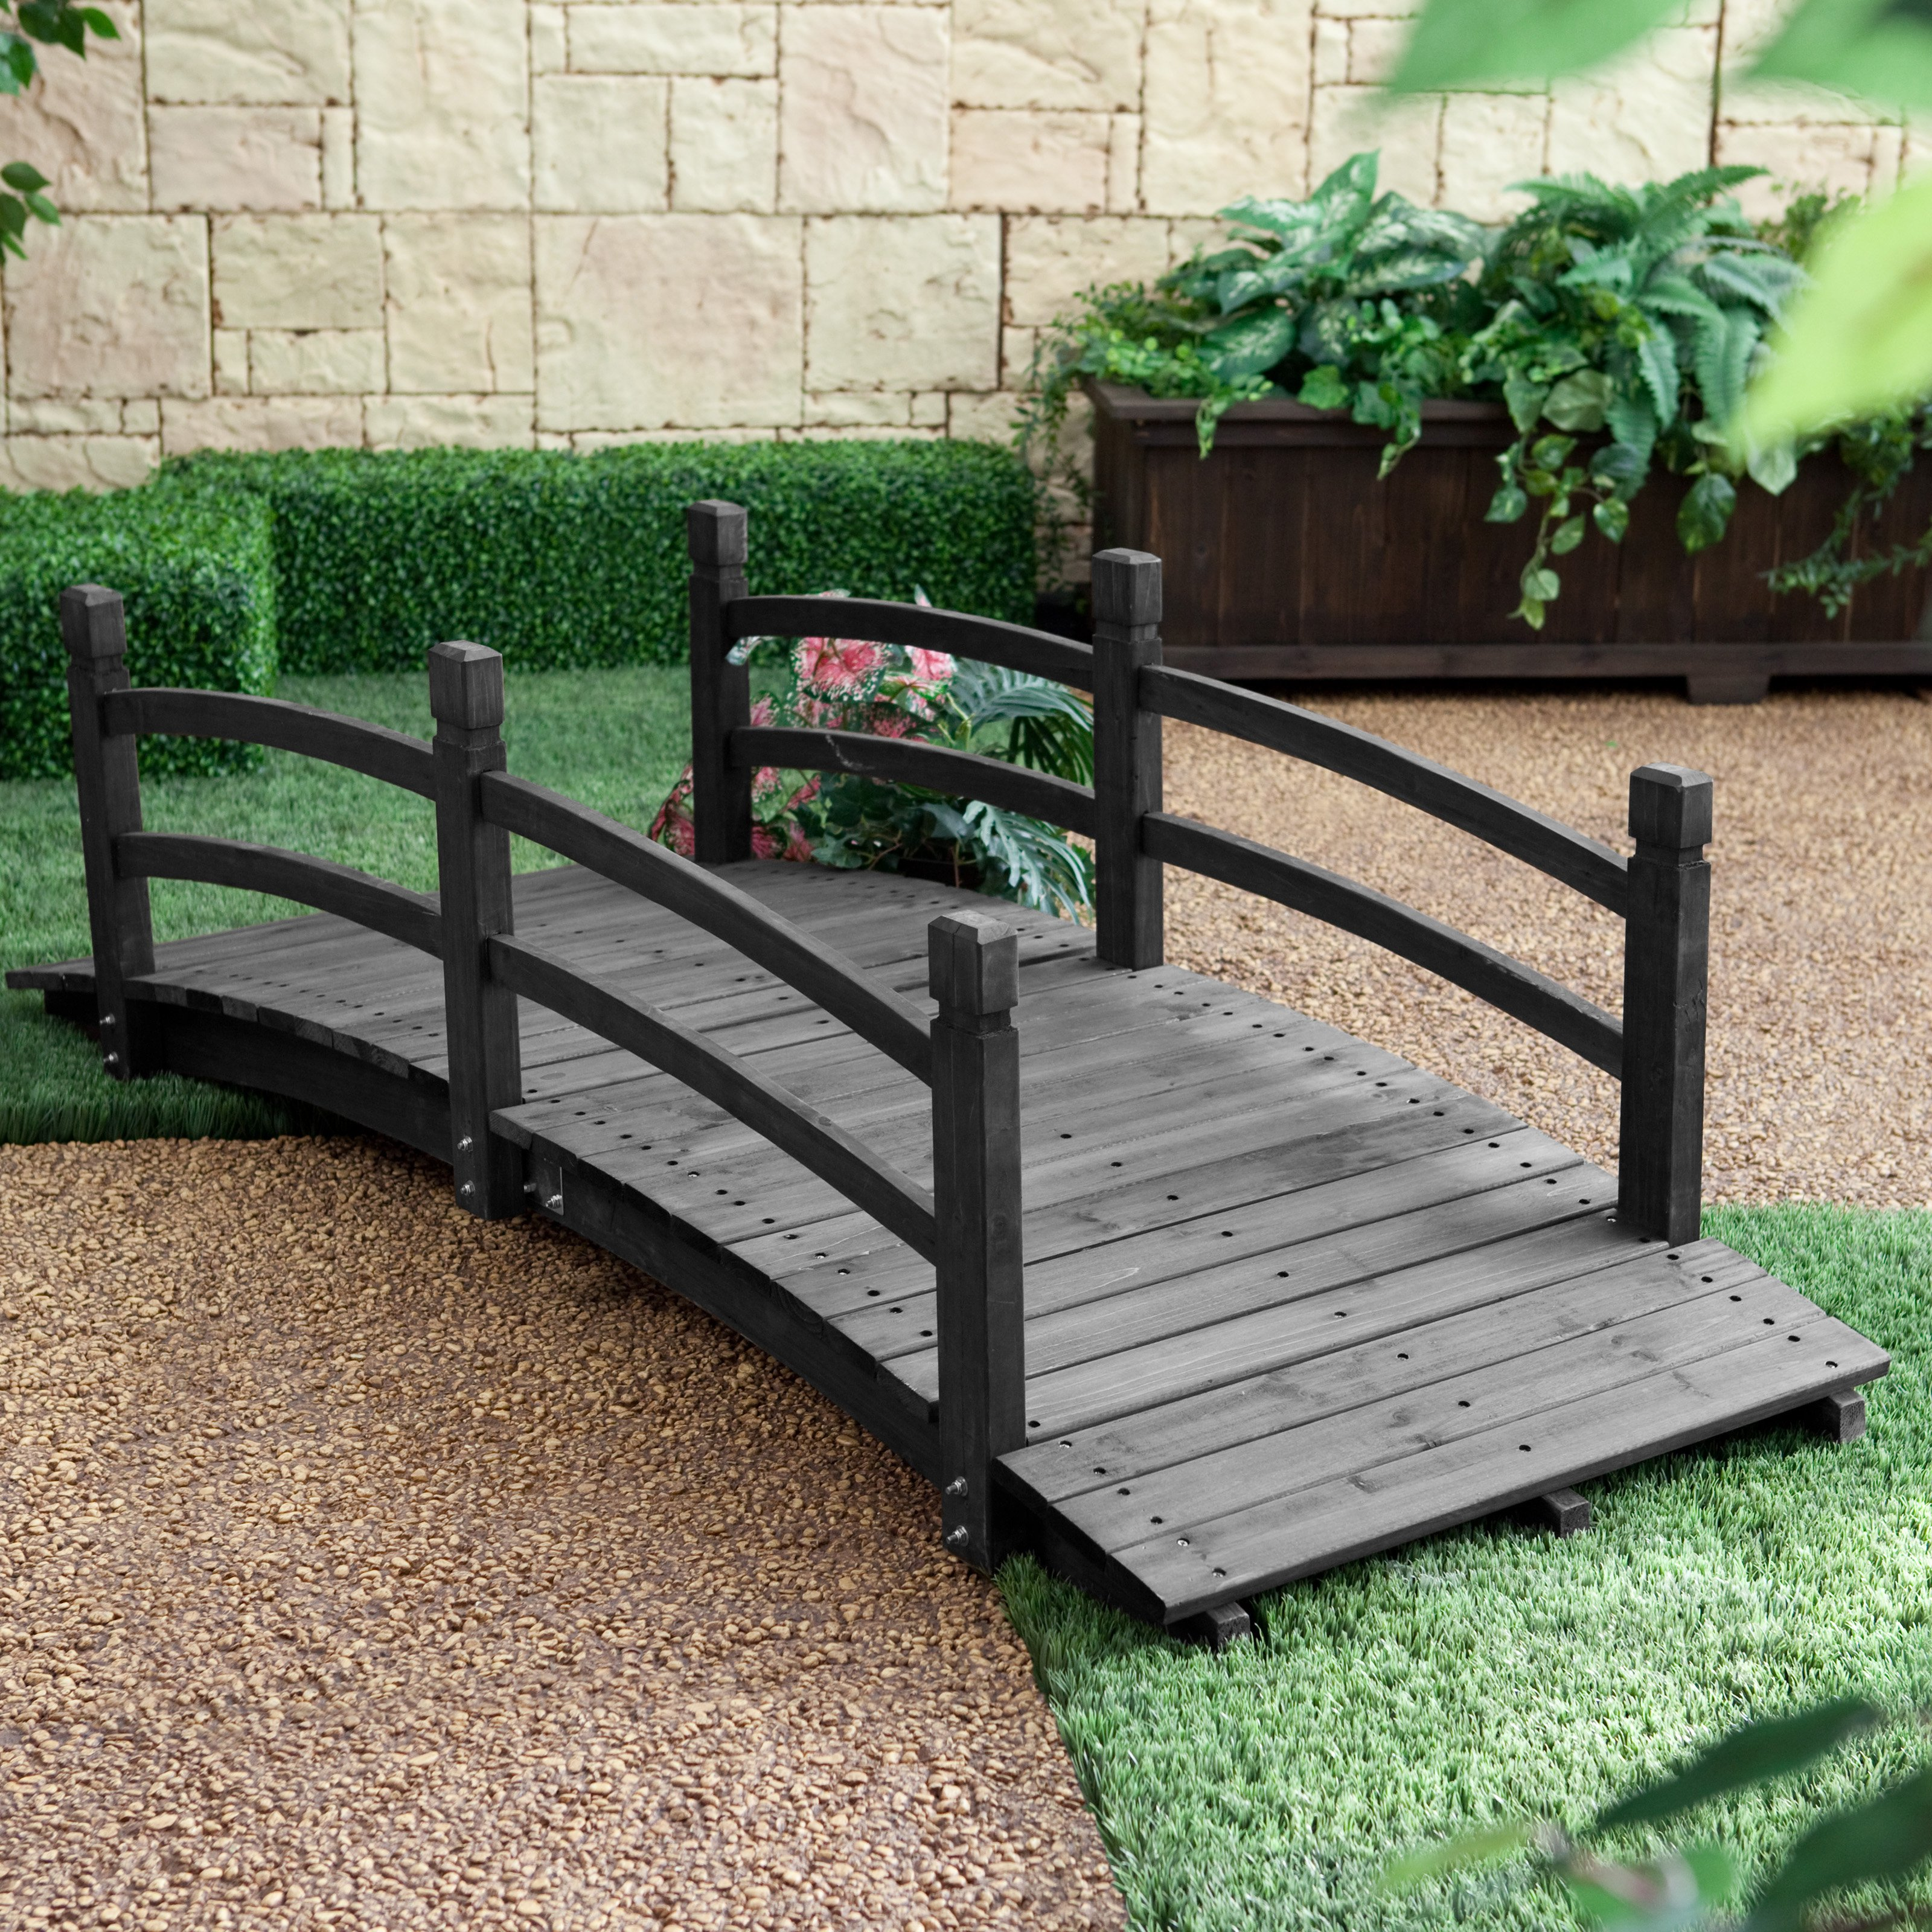 Backyard Bridges coral coast harrison 6-ft. wood garden bridge - dark stain - walmart